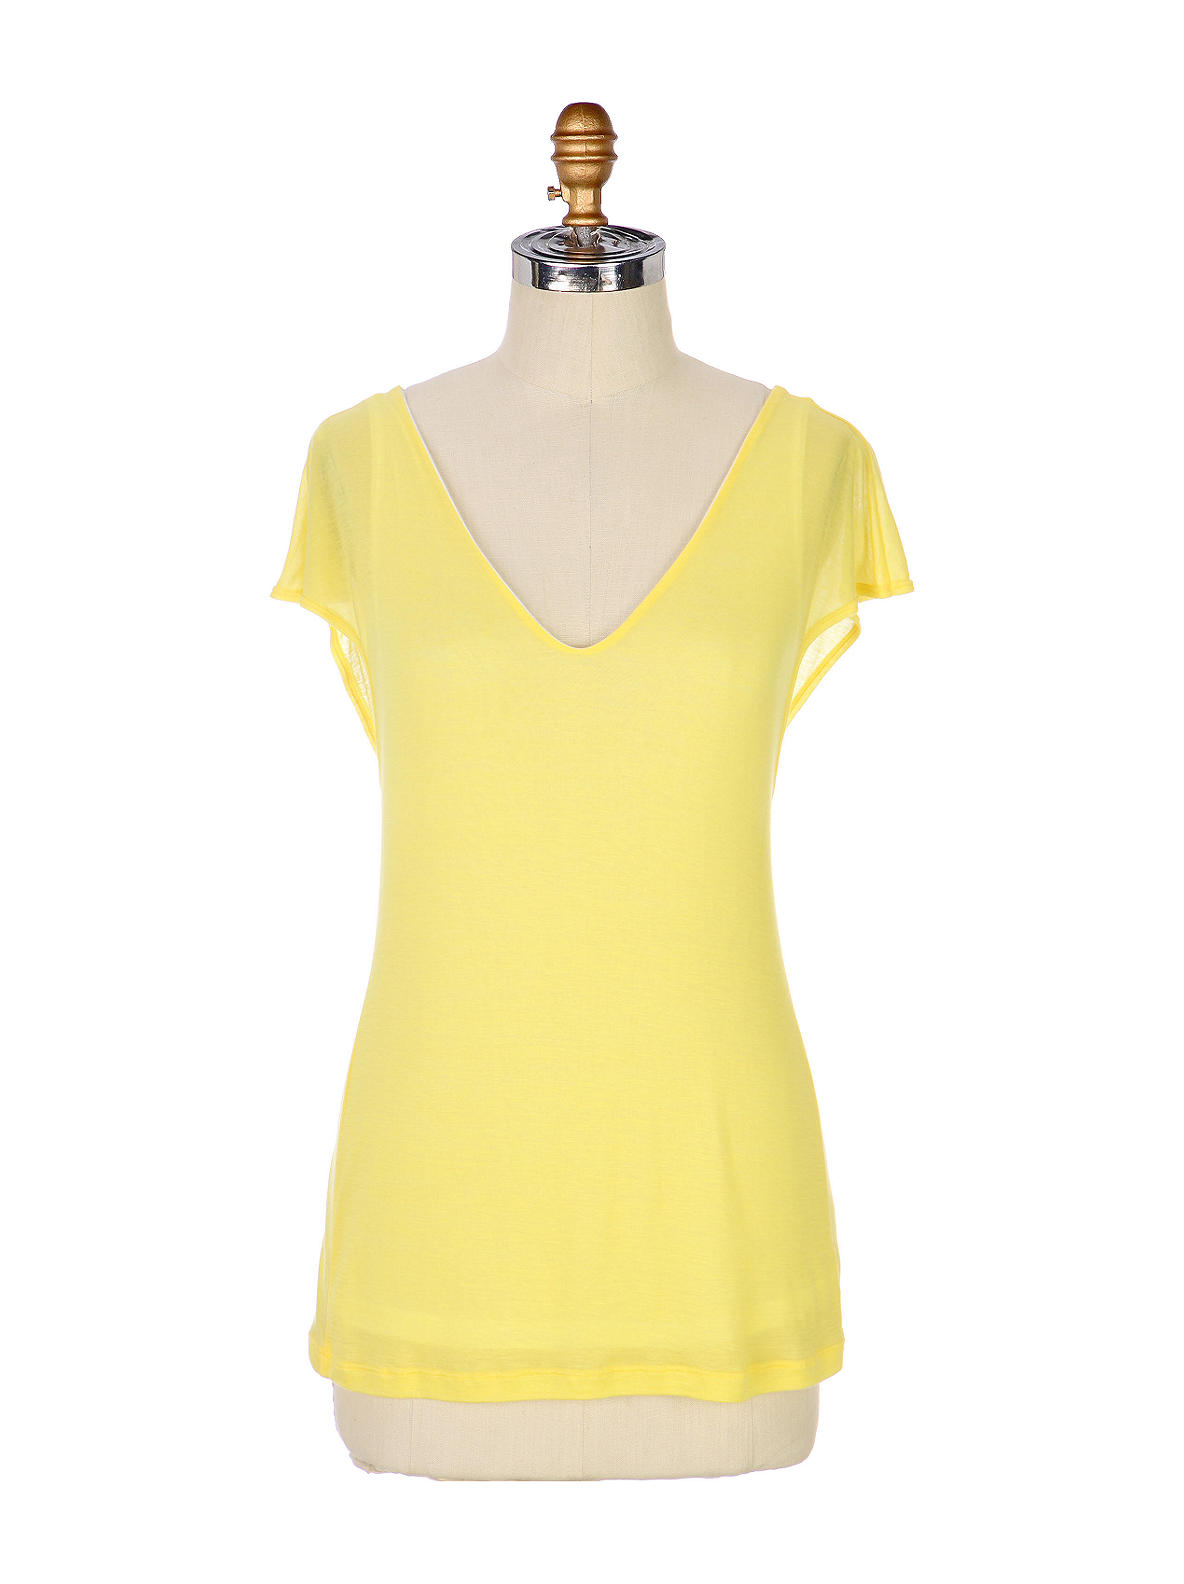 Sunny Glow Tee - Anthropologie.com :  tencel cap sleeves anthropologie lined